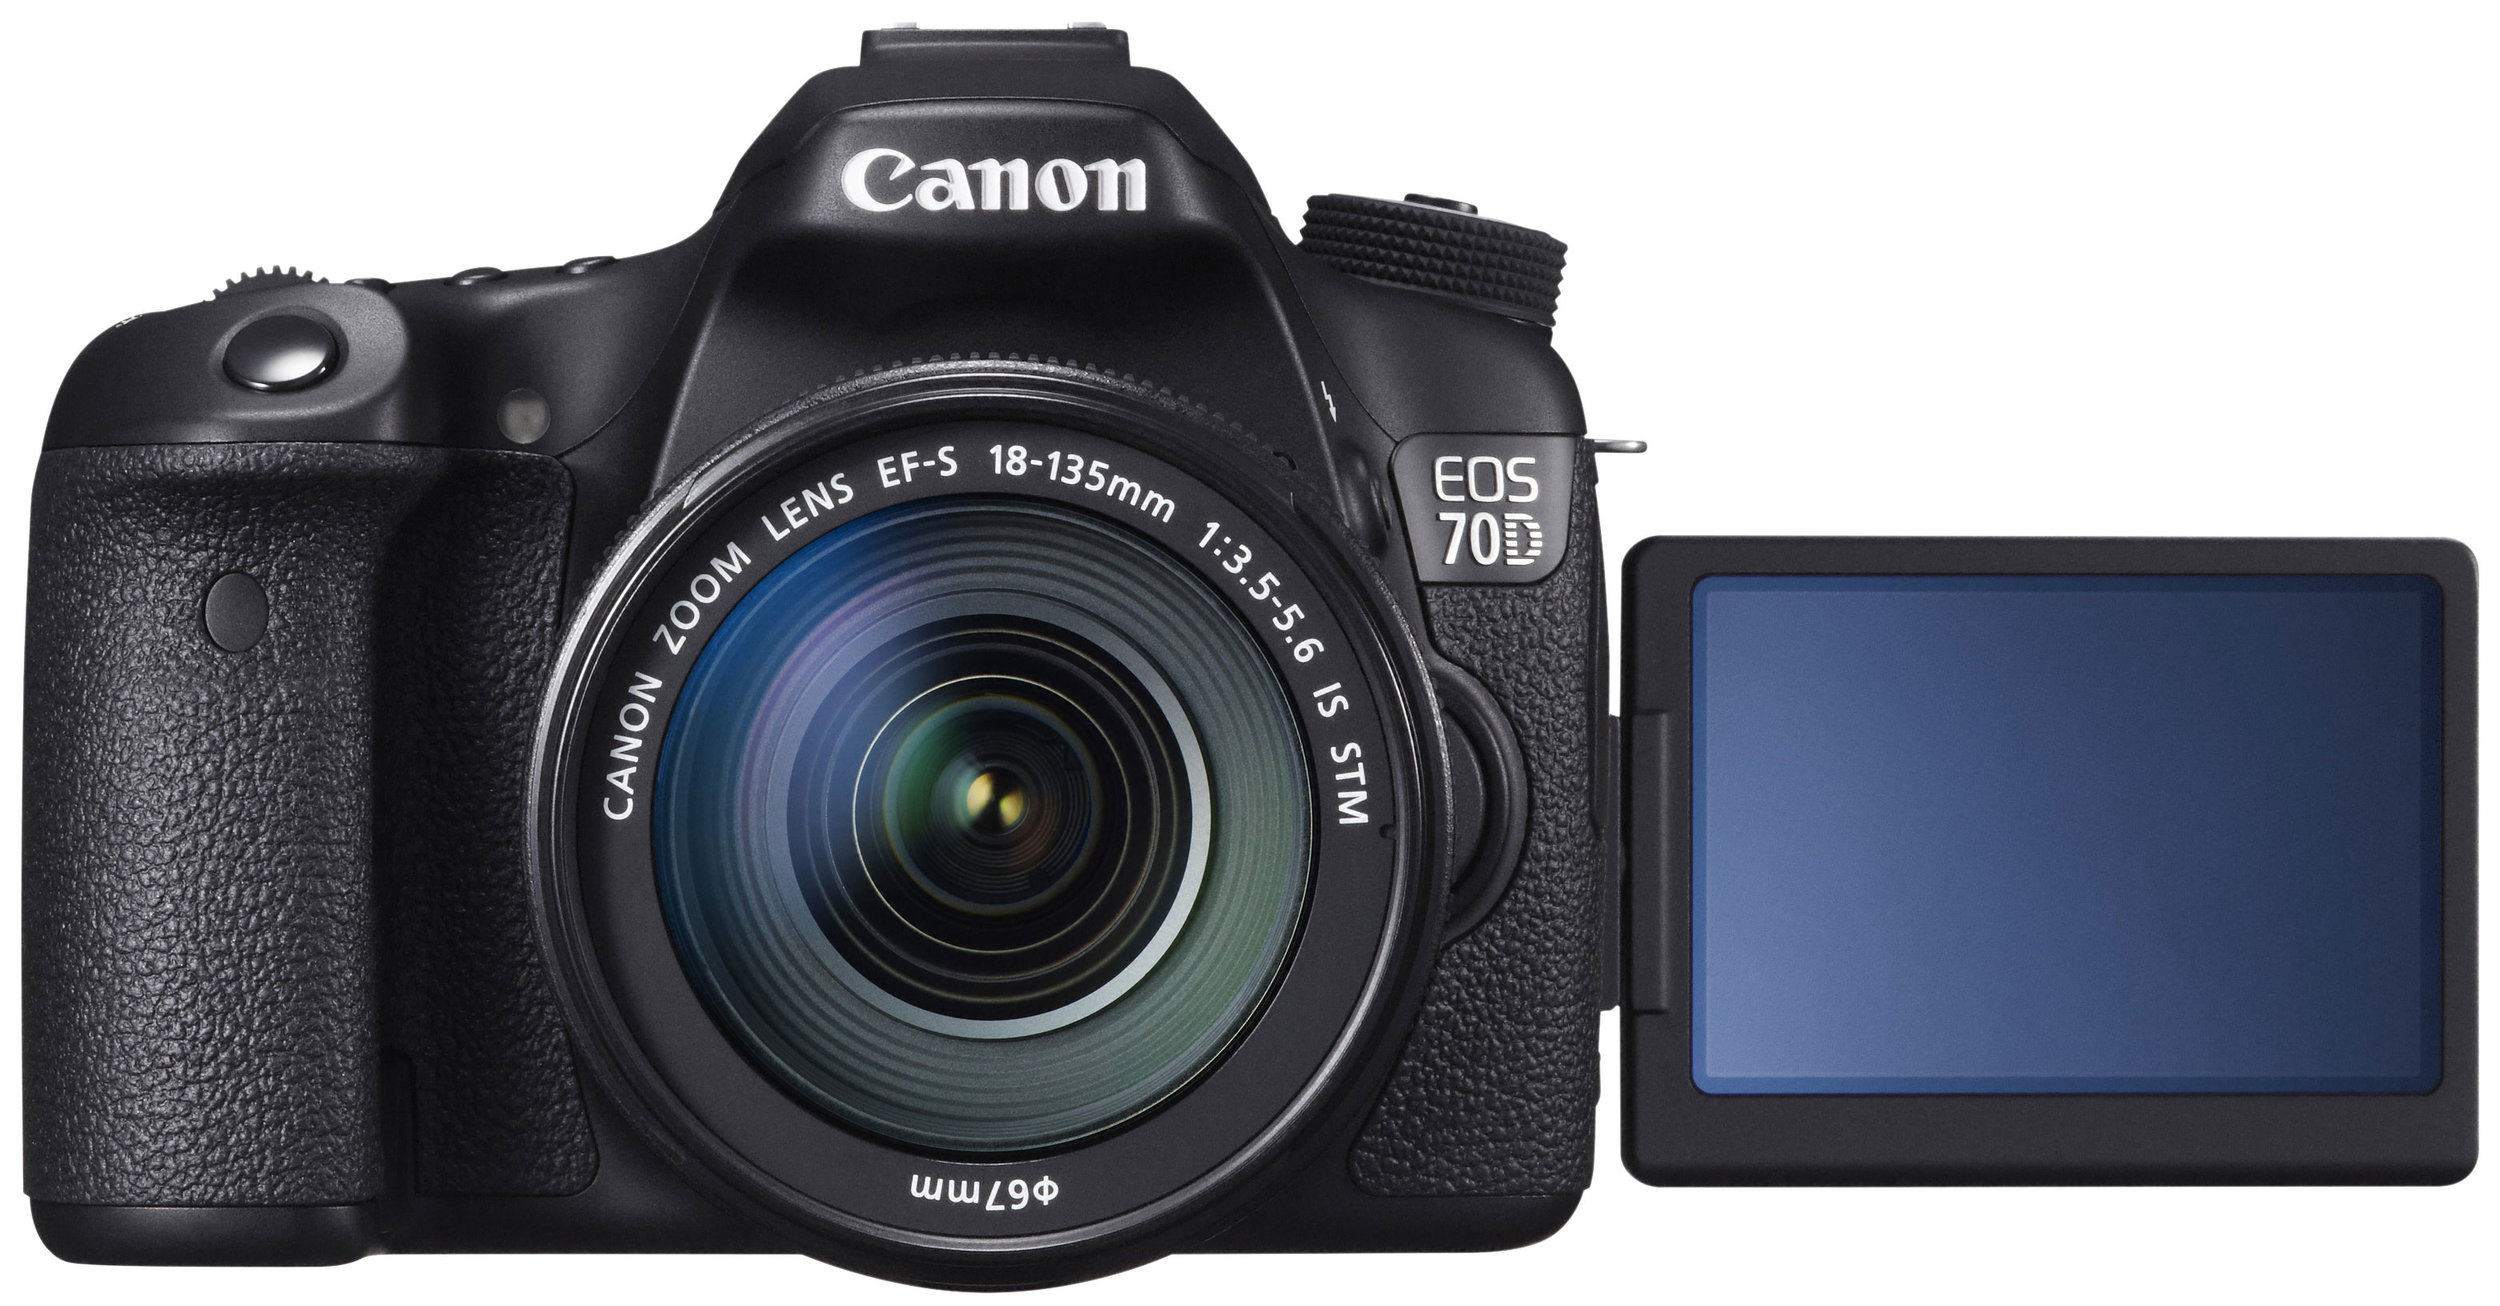 highres-canon-EOS-70D-FRT-VARI-ANGLE-MONITOR-OPEN-w-EF-S-18-135mm-IS-STM_1372751125.jpg